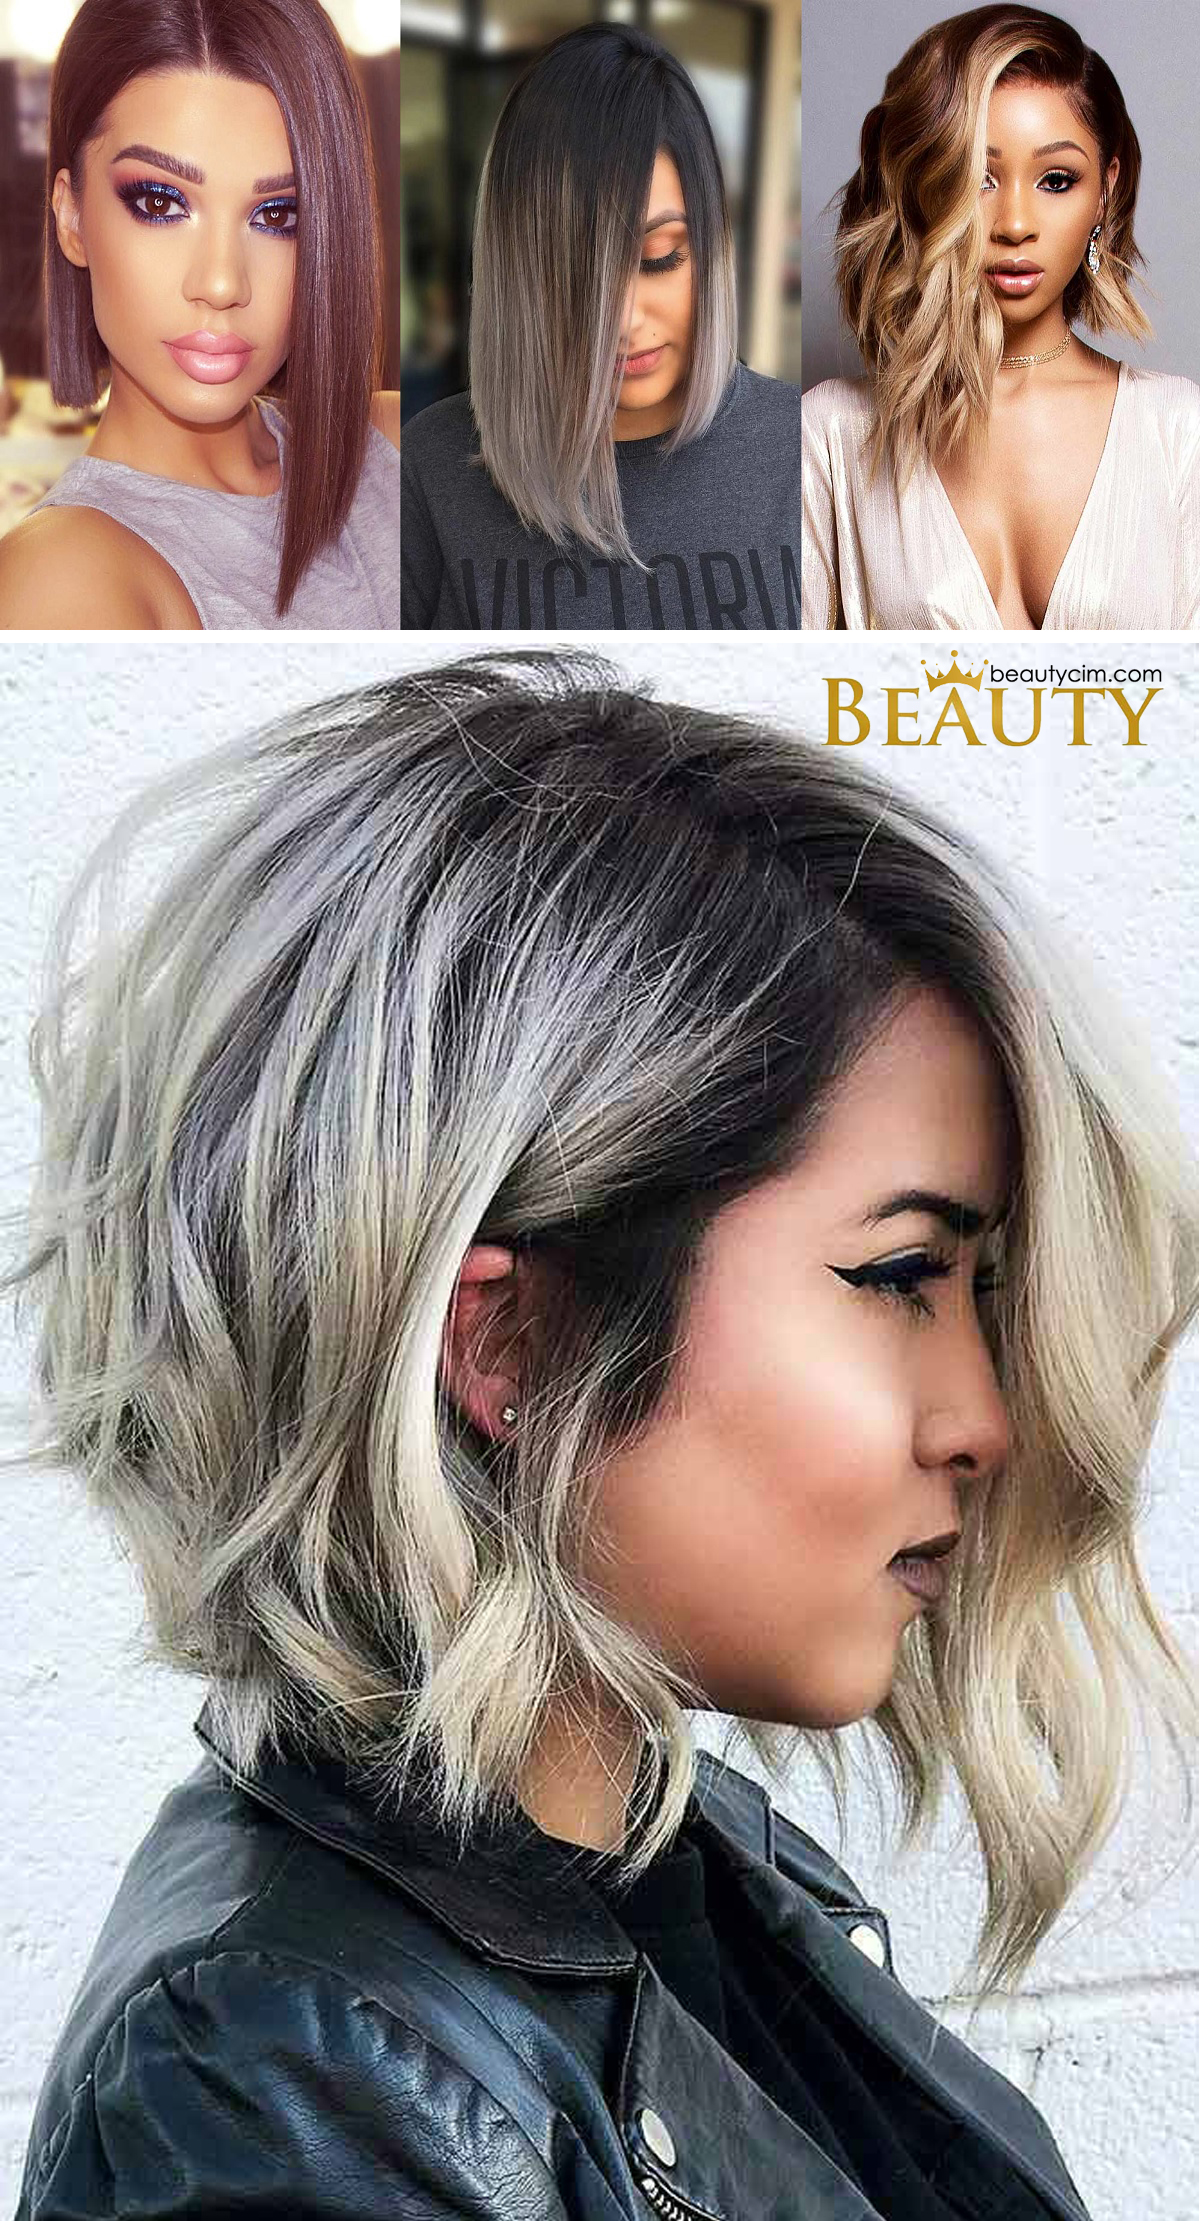 Best Hairstyles for Thin Hair Women Hair Trends 2021 ...